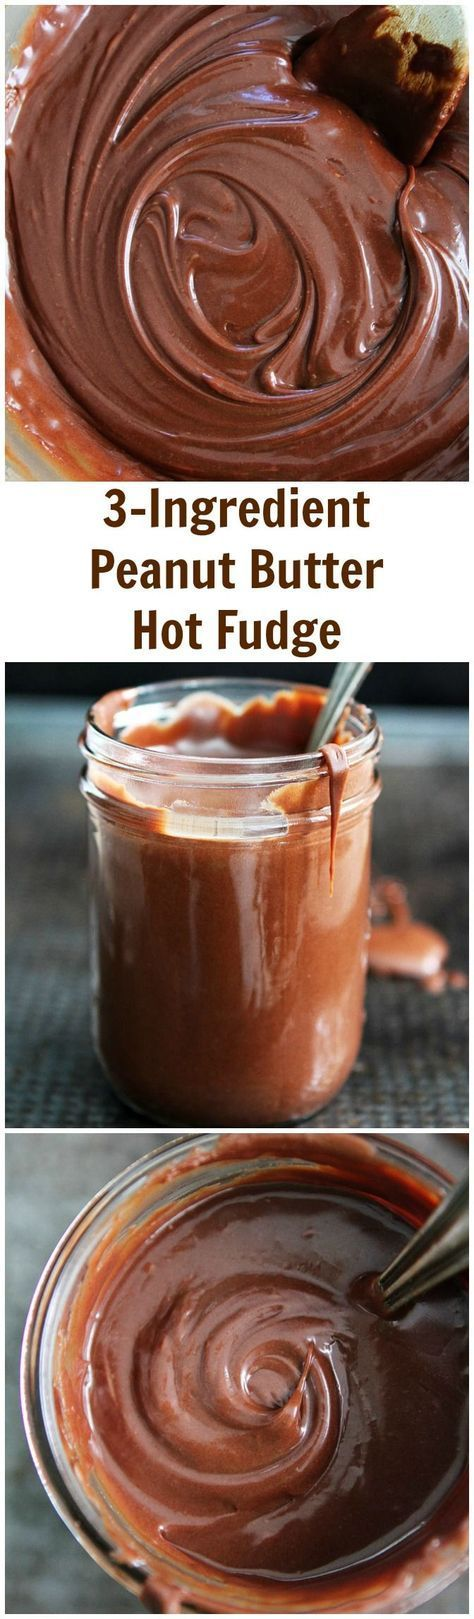 3-Ingredient Peanut Butter Hot Fudge Sauce Recipe on http://twopeasandtheirpod.com This easy hot fudge sauce is amazing! It is great on ice cream, cakes, brownies, strawberries, and more!